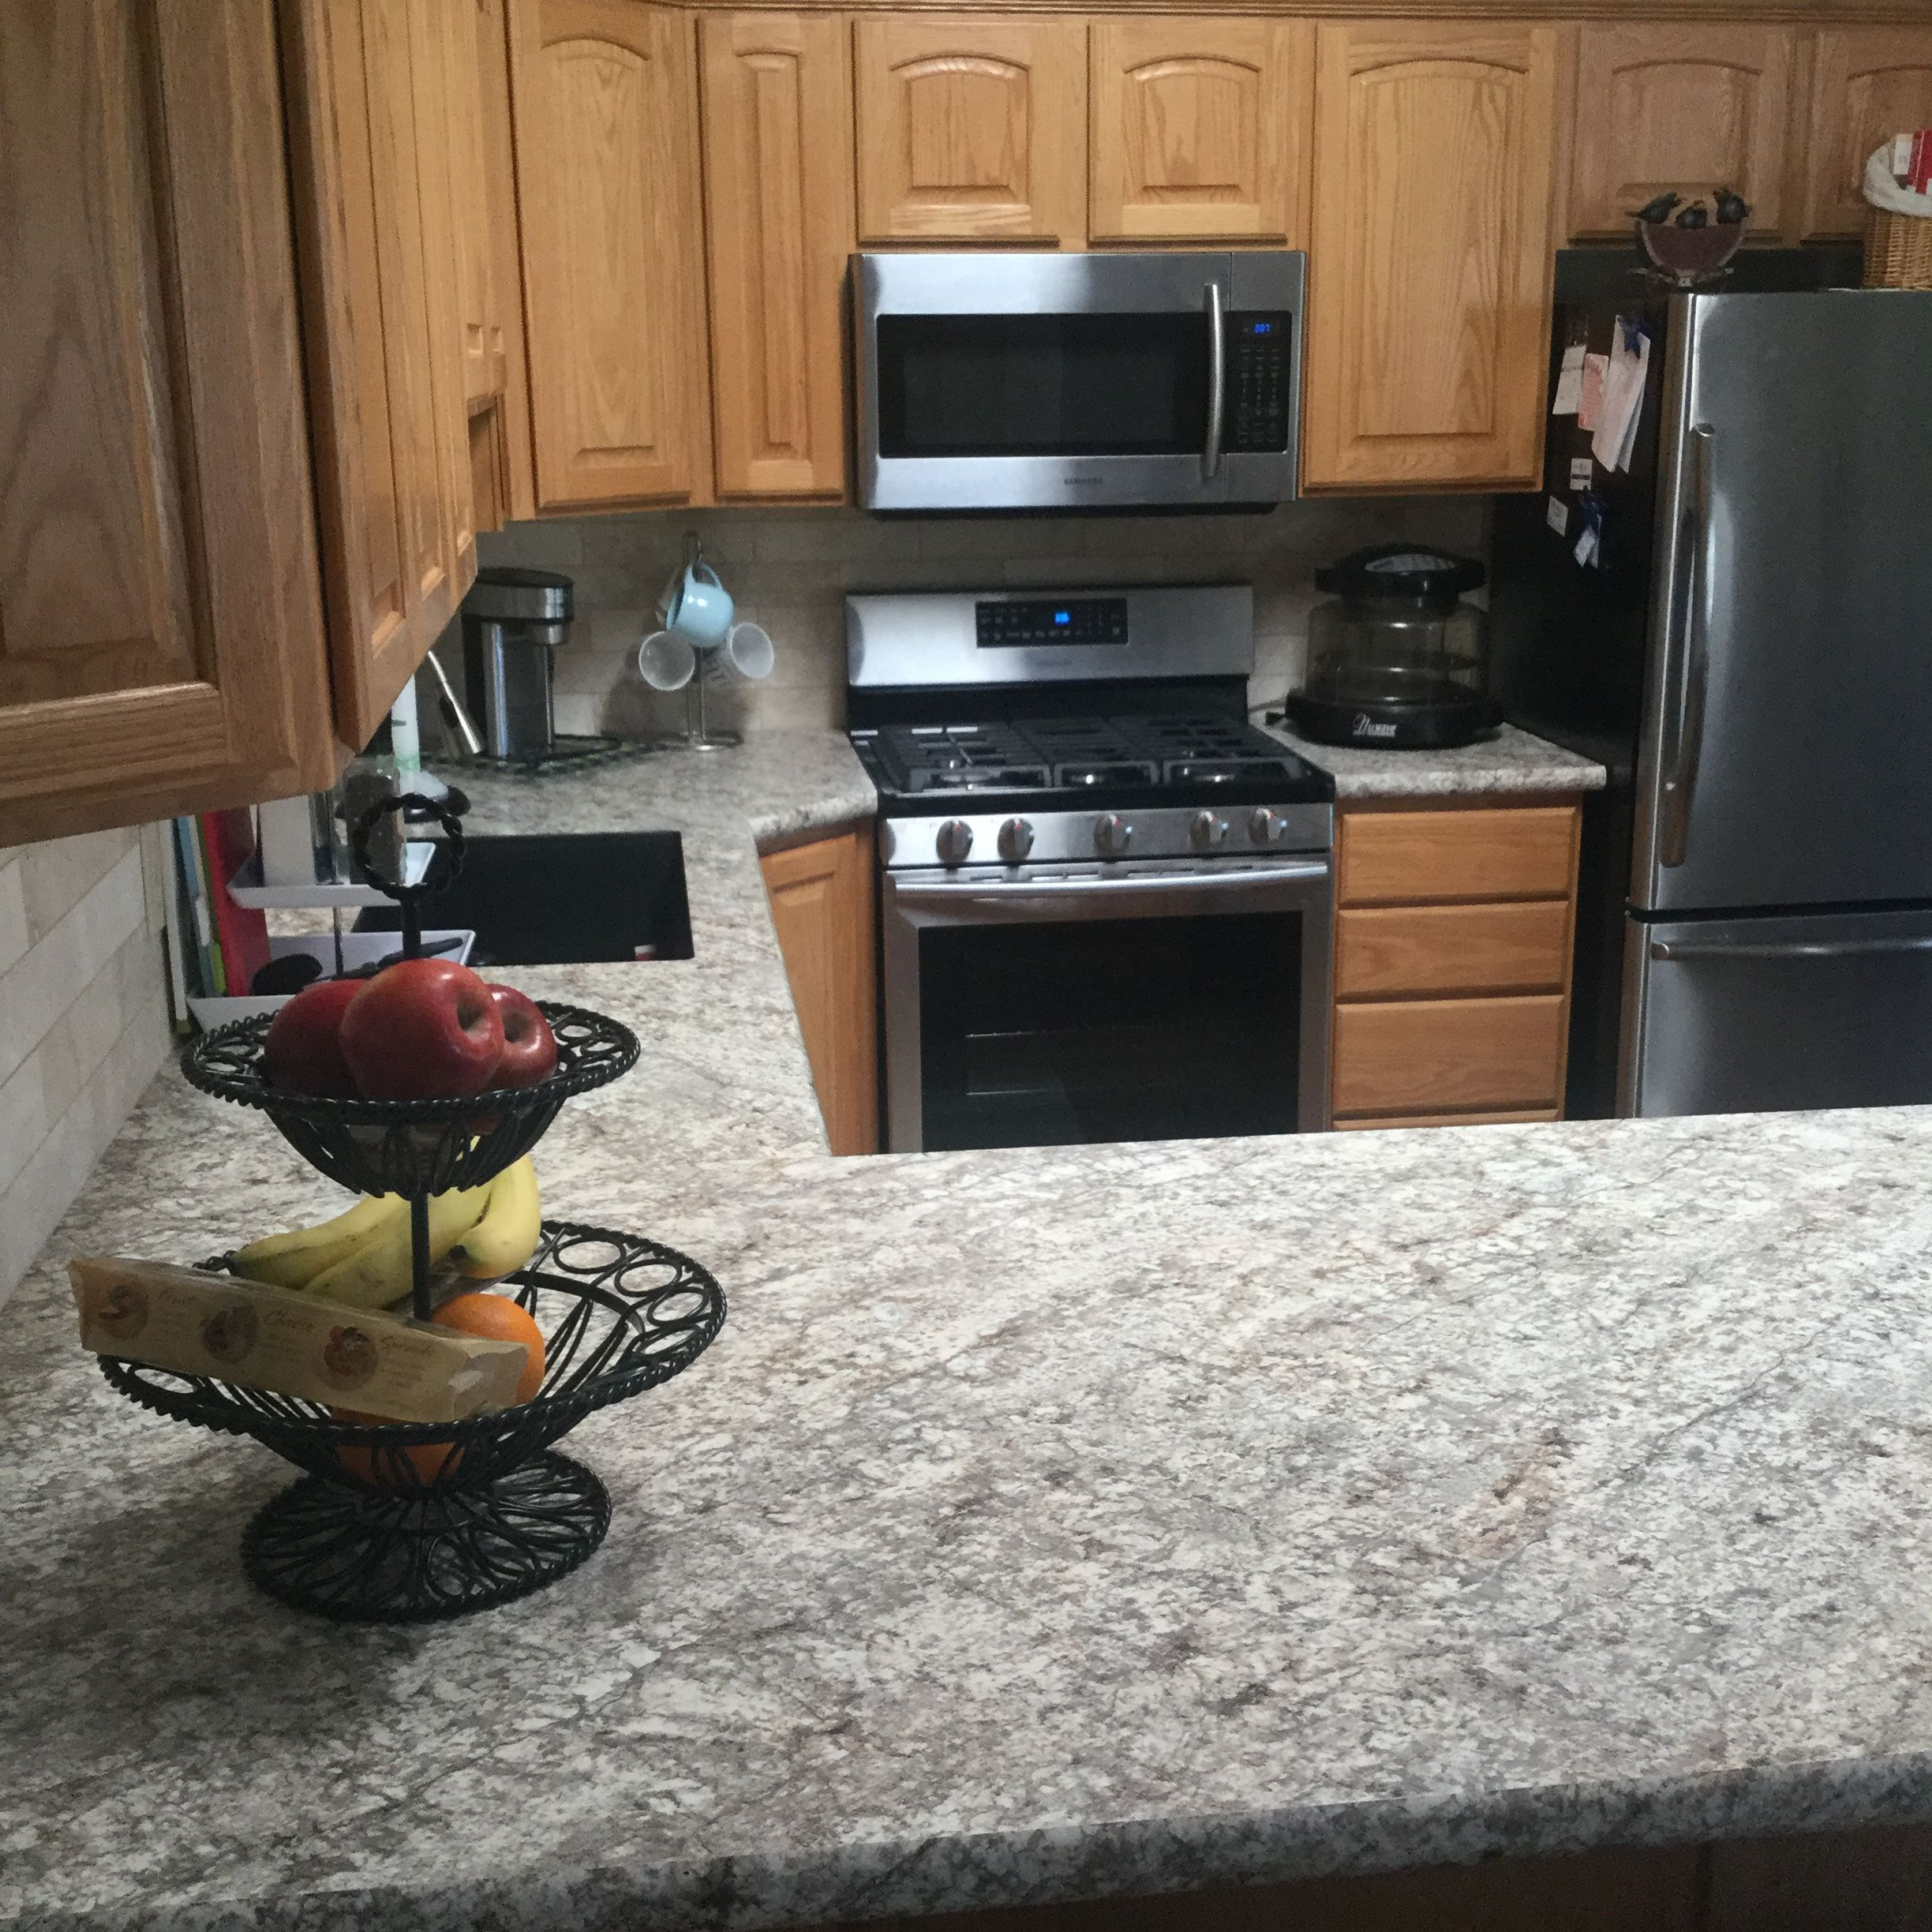 Kitchen Remodel Black Appliances: Finally Completed With New Backsplash, Bianco Romano